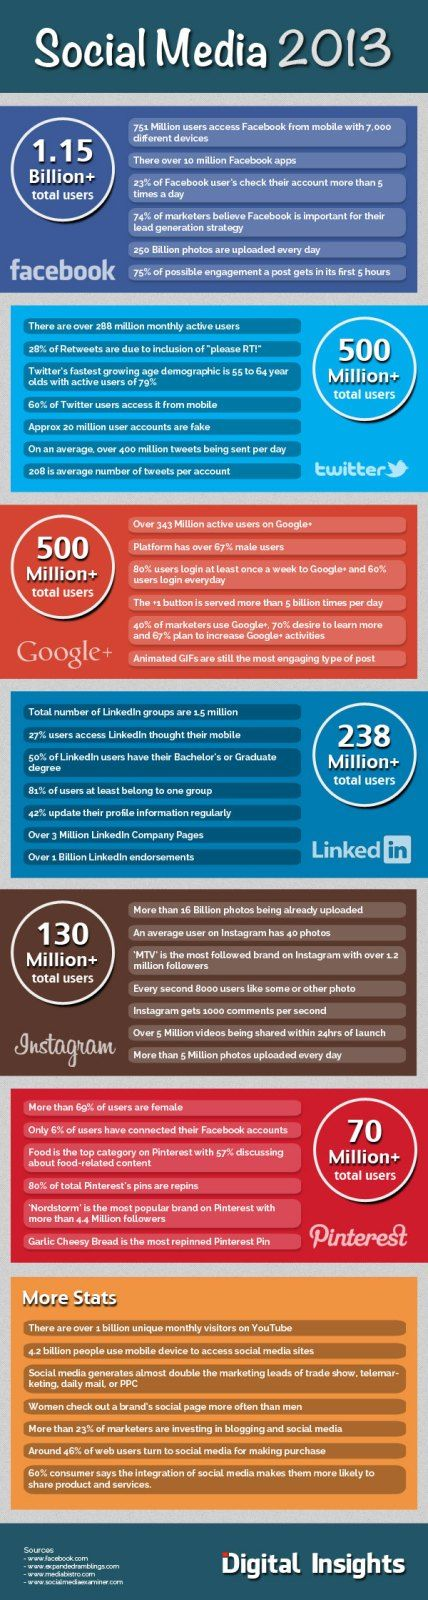 Social Media: Important Stats And Facts - Infographic